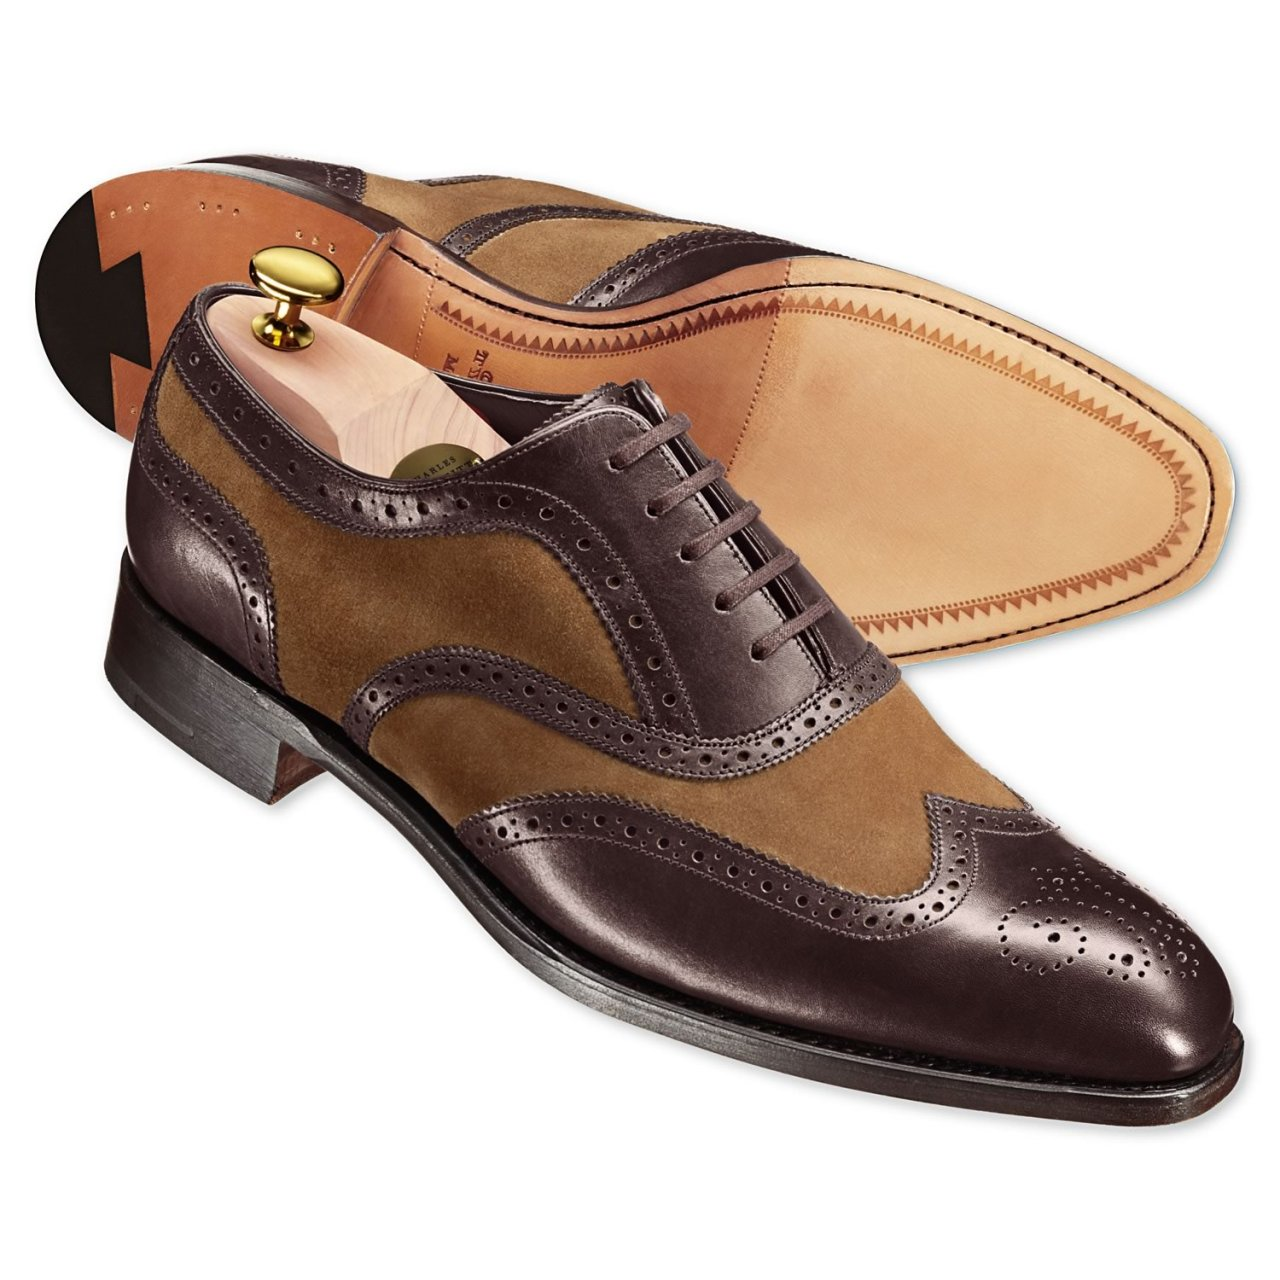 Brown calf & suede correspondent shoes at Charles Tyrwhitt